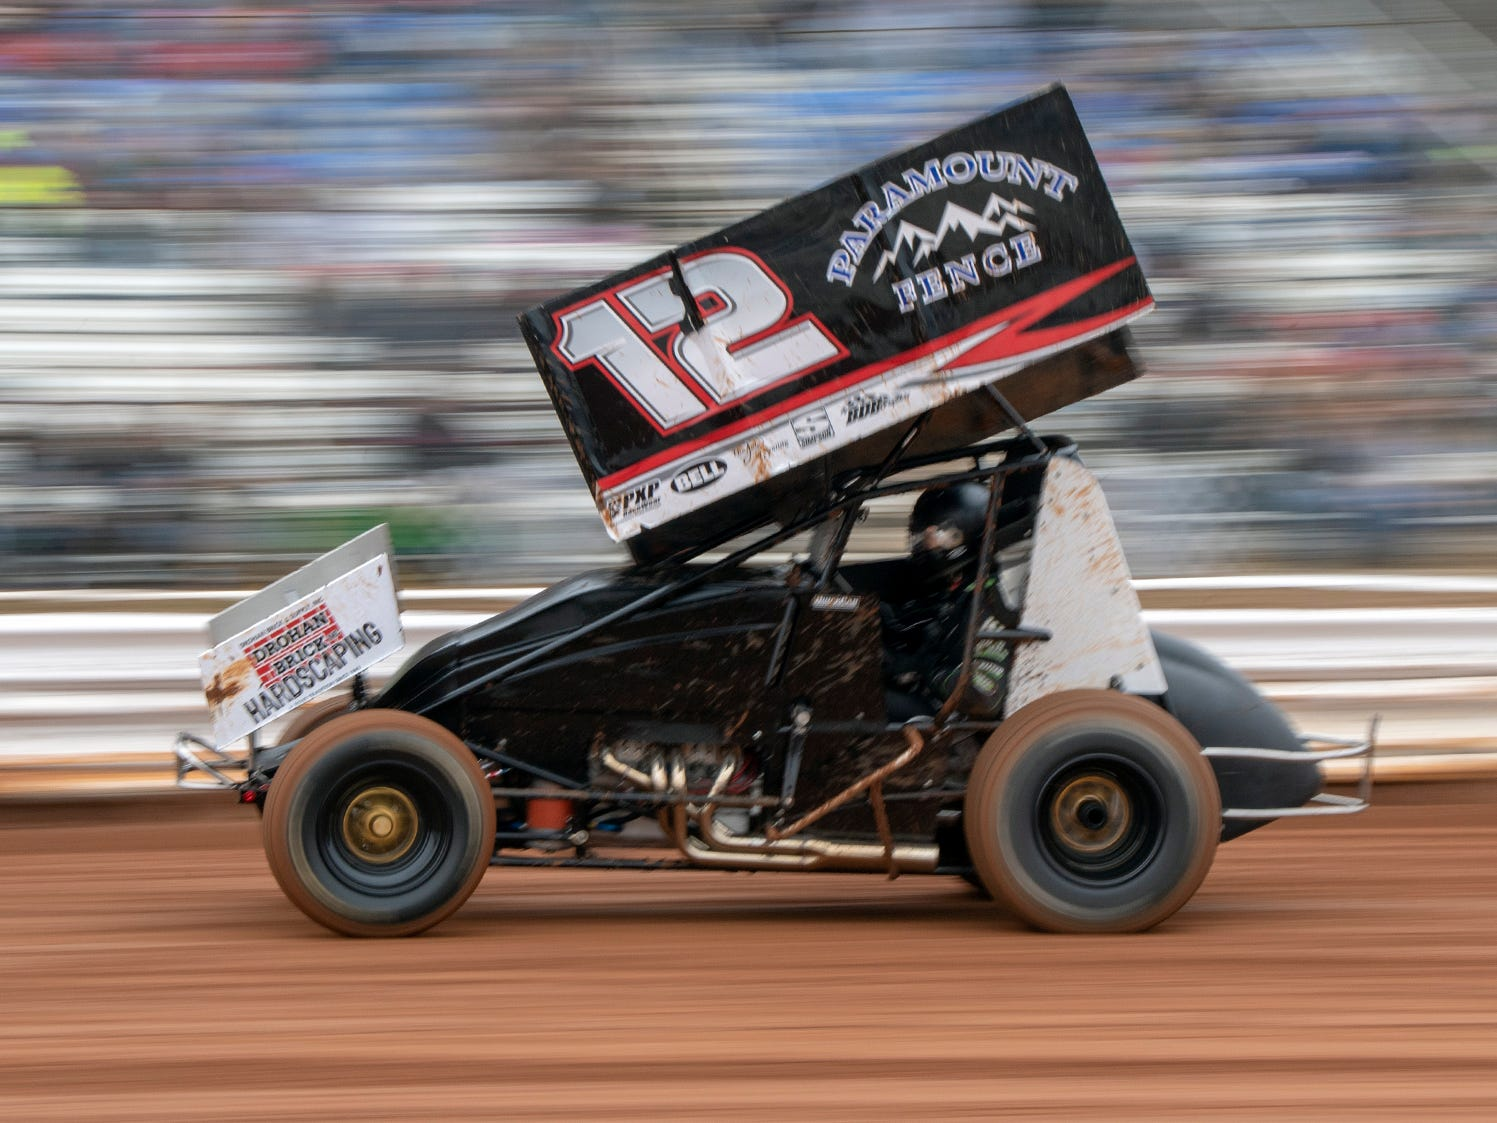 The number 12 car driven by Tyler Esh streaks past the crowd during the Lincoln Speedway Ice Breaker 30 on Sunday near Abbottstown.